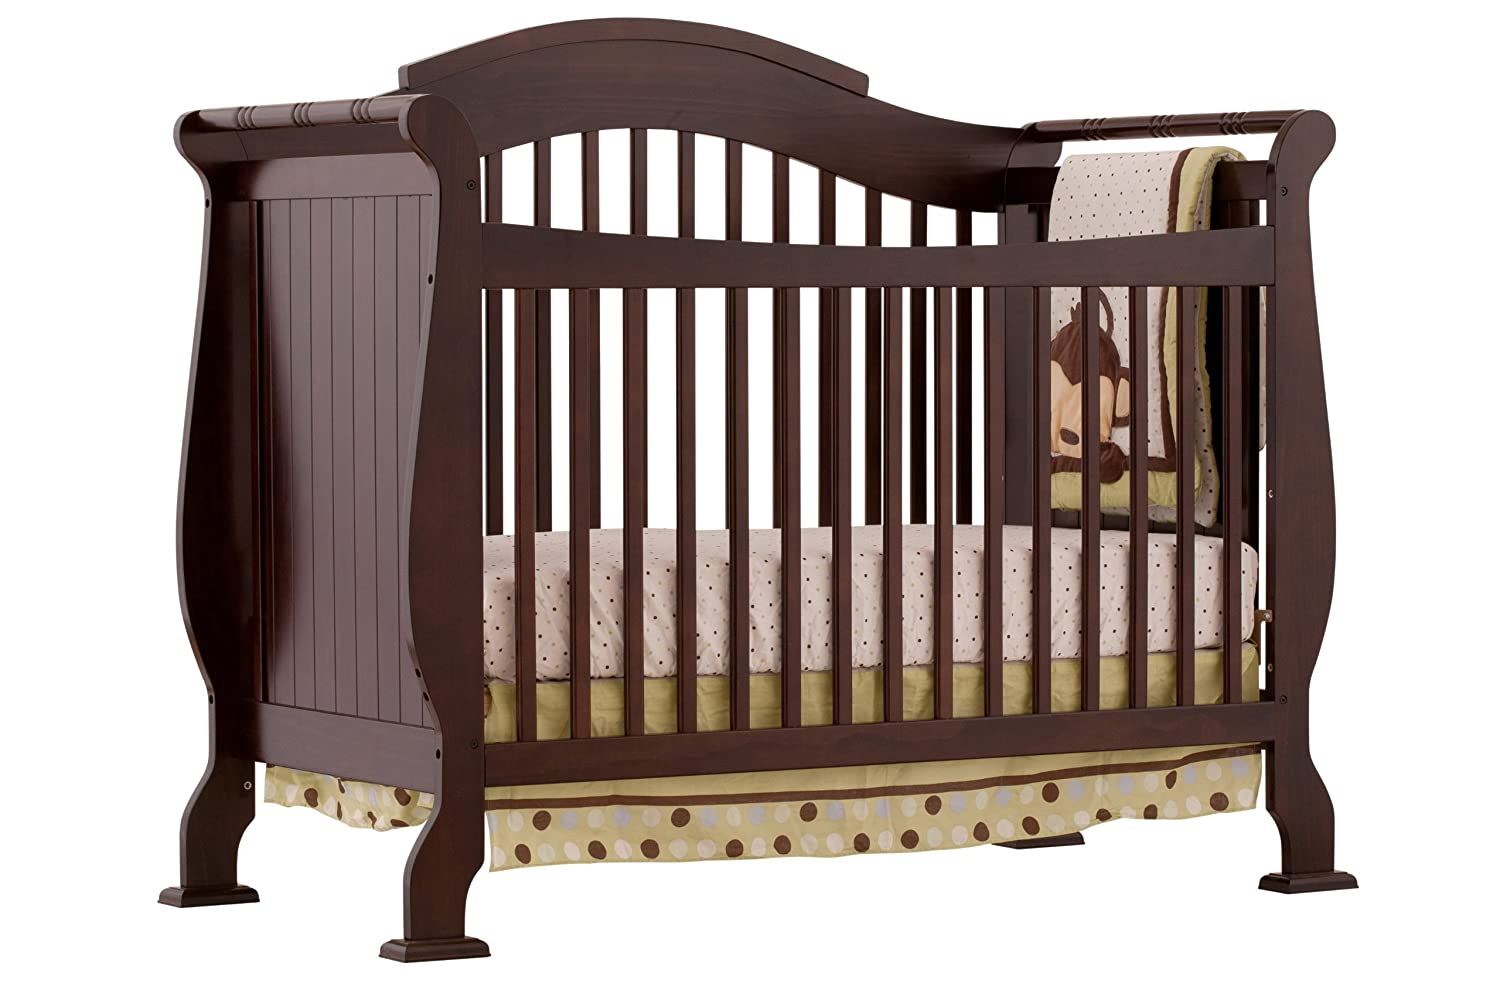 $179 (was $350) Storkcraft Valentia 4-in-1 Convertible Crib, Espresso